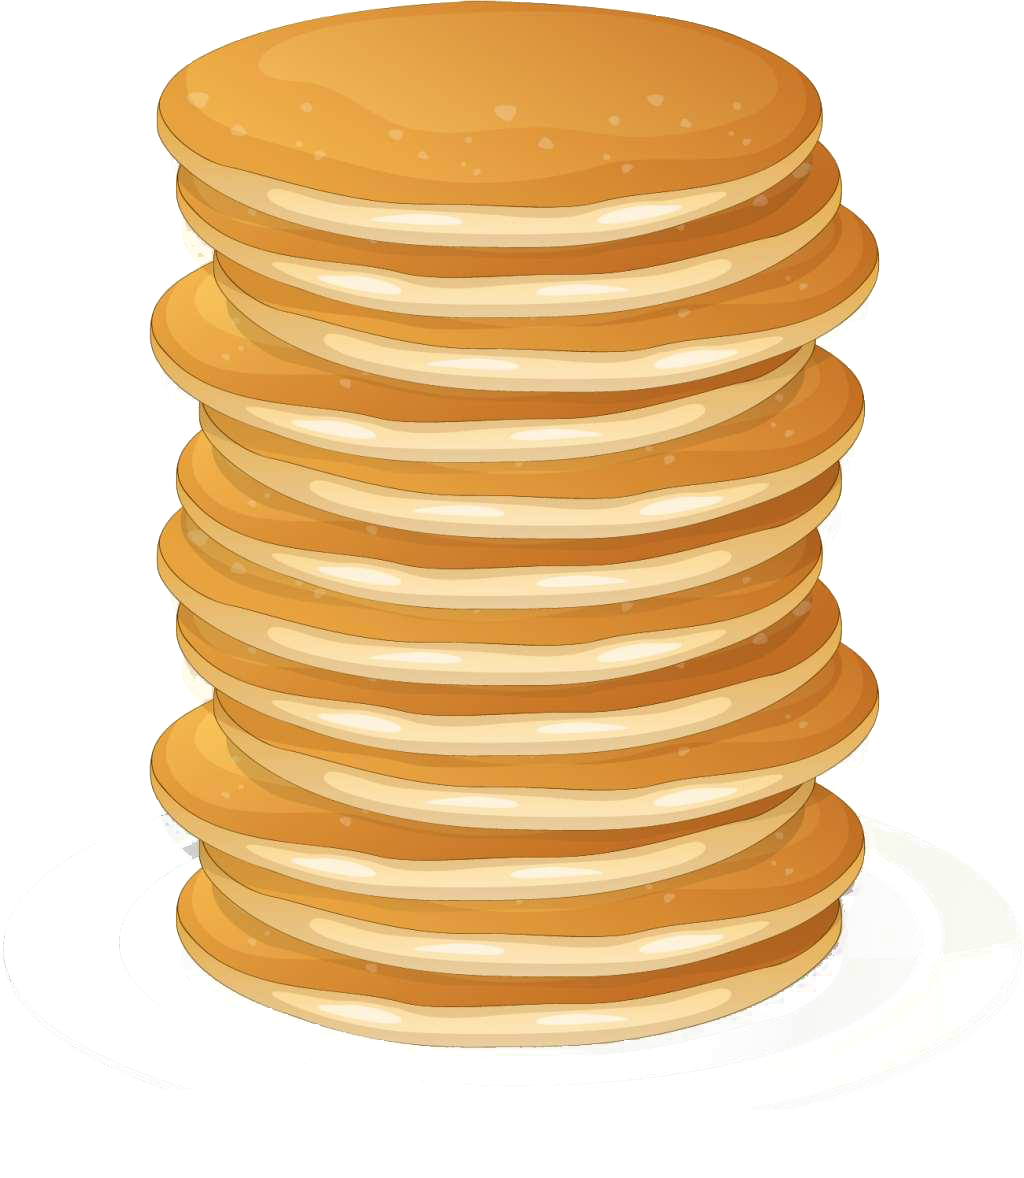 Transparent pancakes single. Pancake breakfast vector